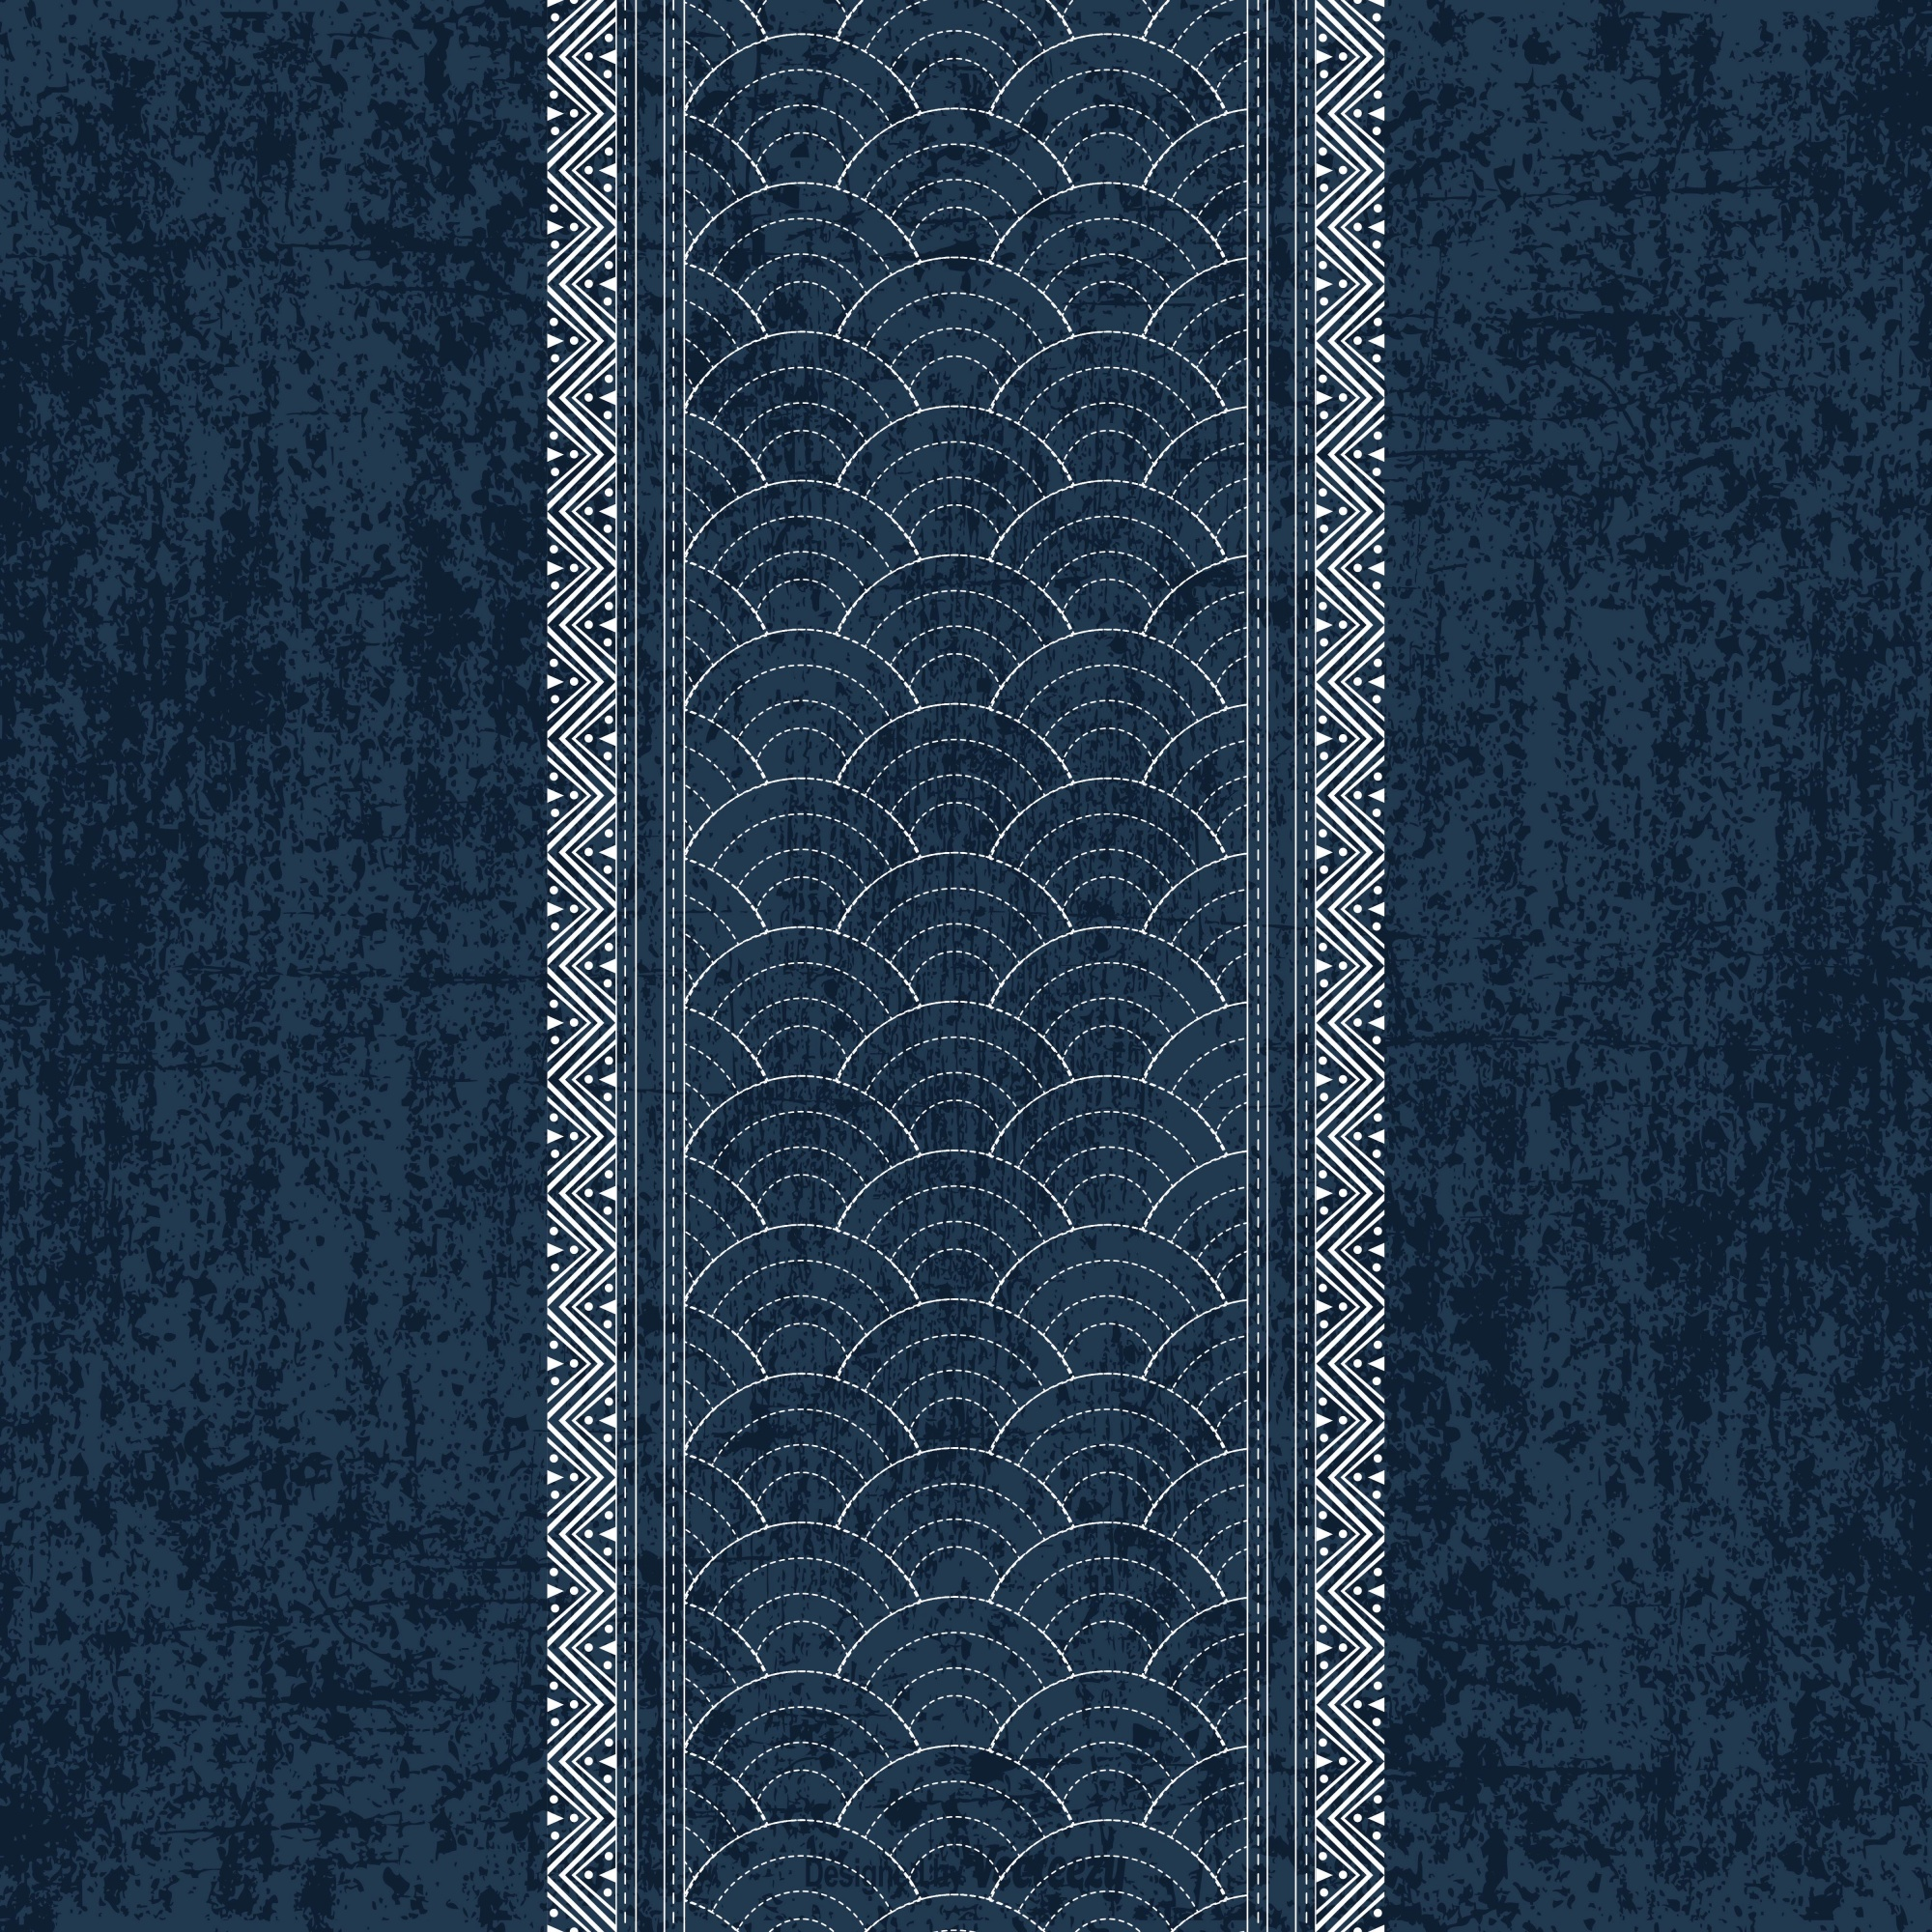 Sashiko indigo dye pattern with traditional white Japanese embroidery